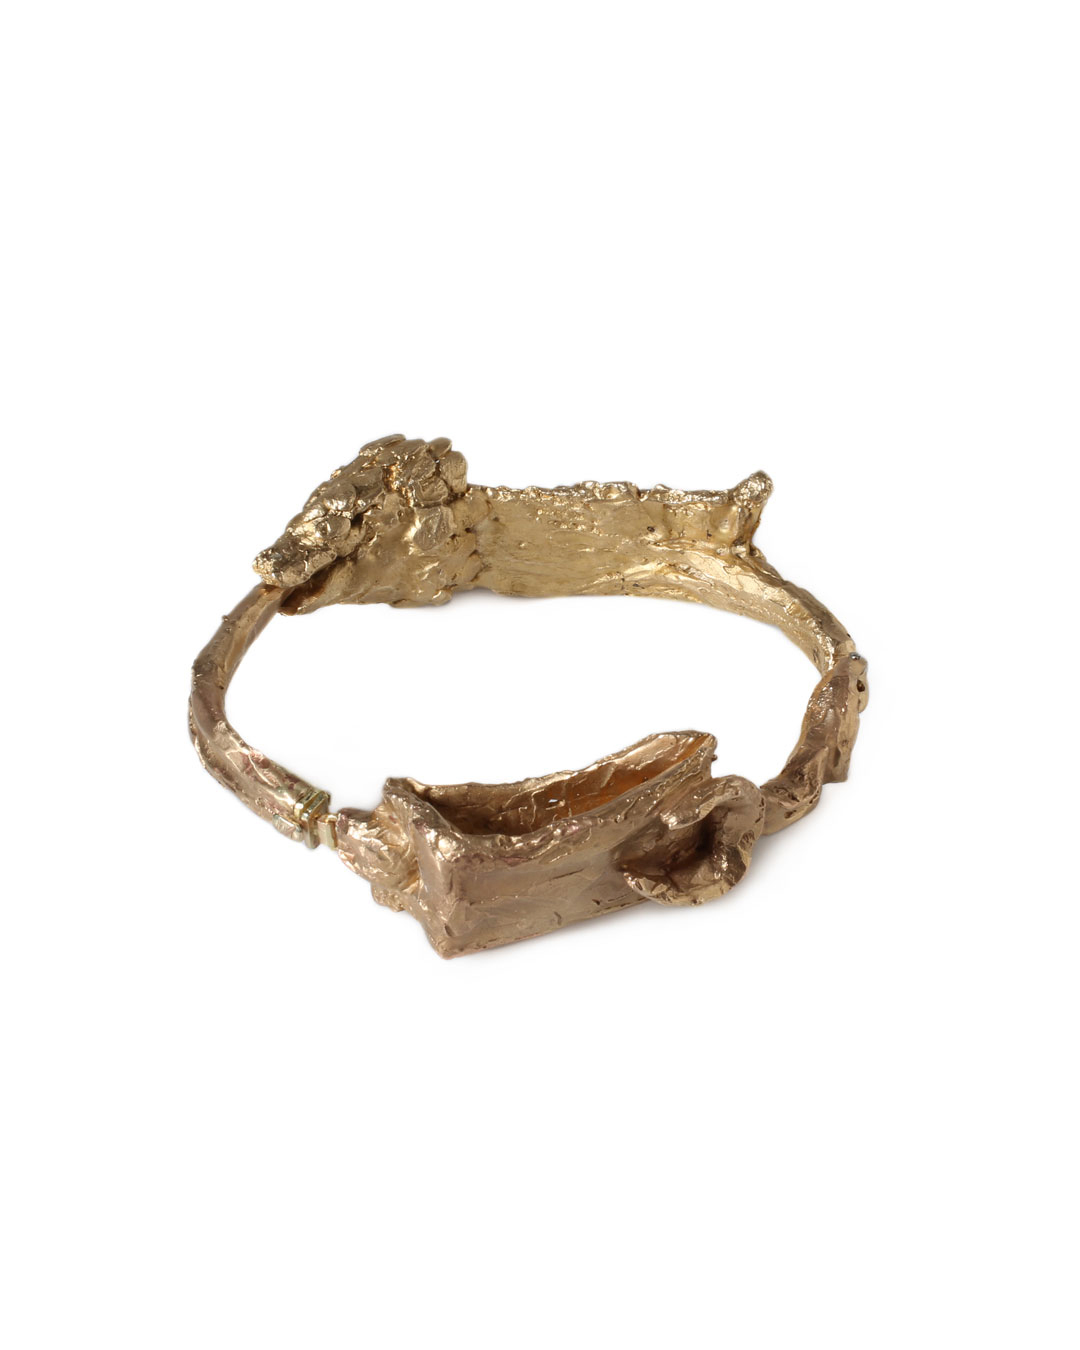 Juliane Brandes, untitled, 2013, bracelet; bronze, 14ct gold, 90 x 25 mm, €1950